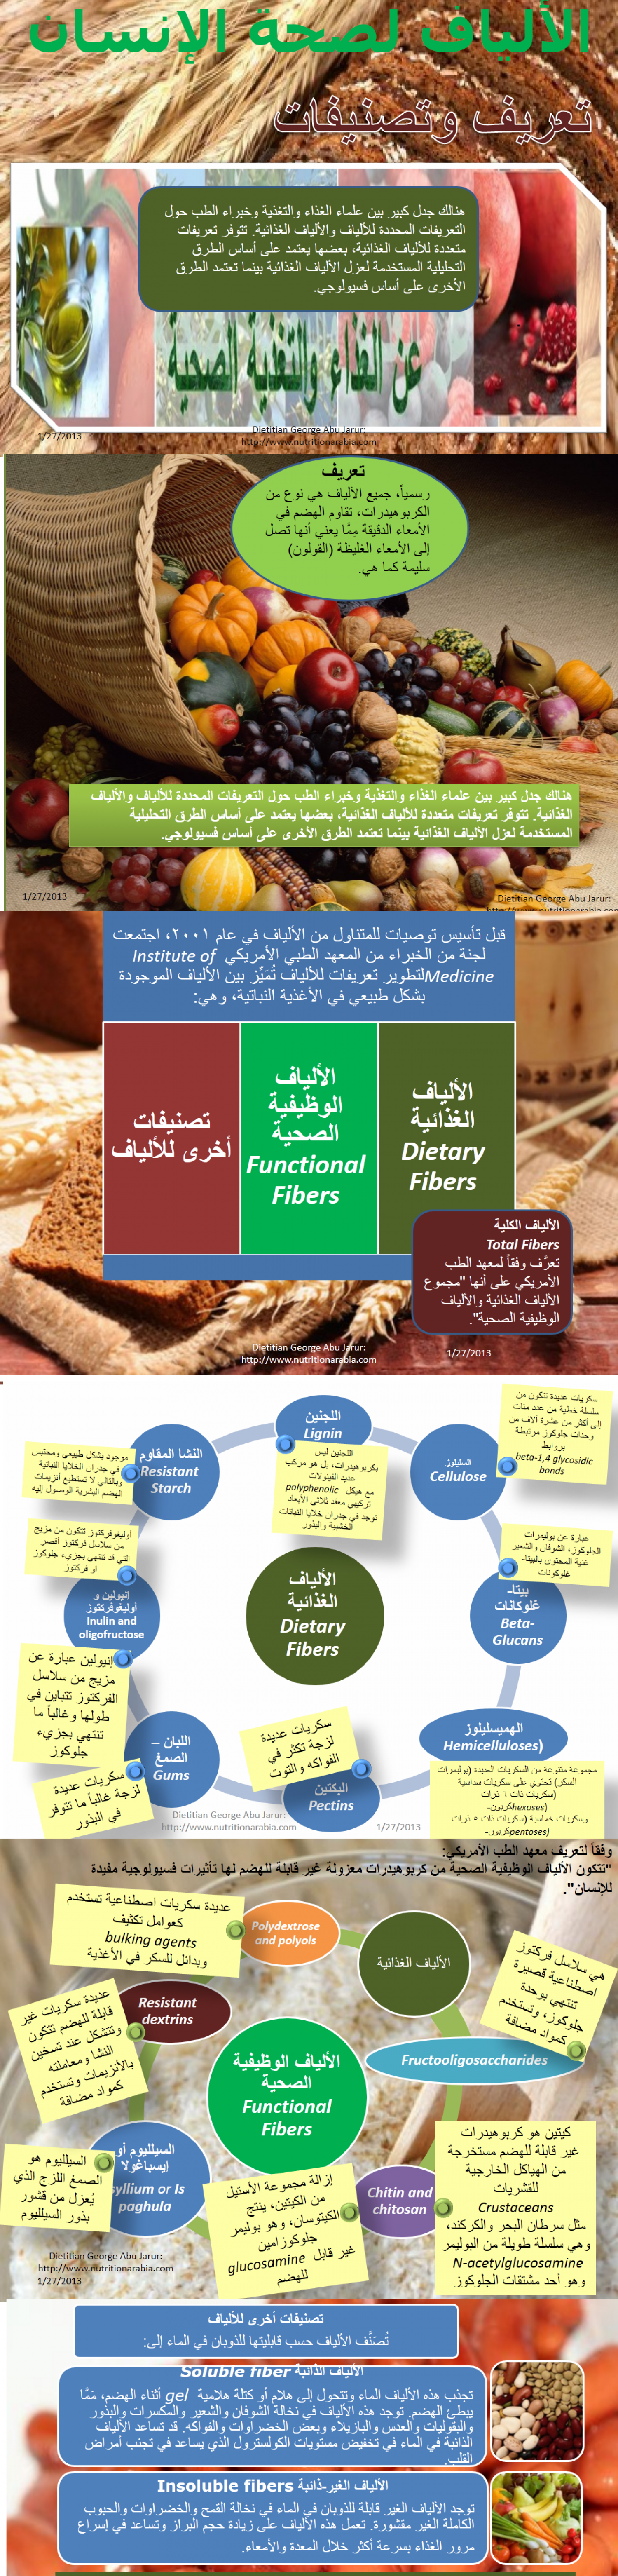 Fibers for Health Infographic